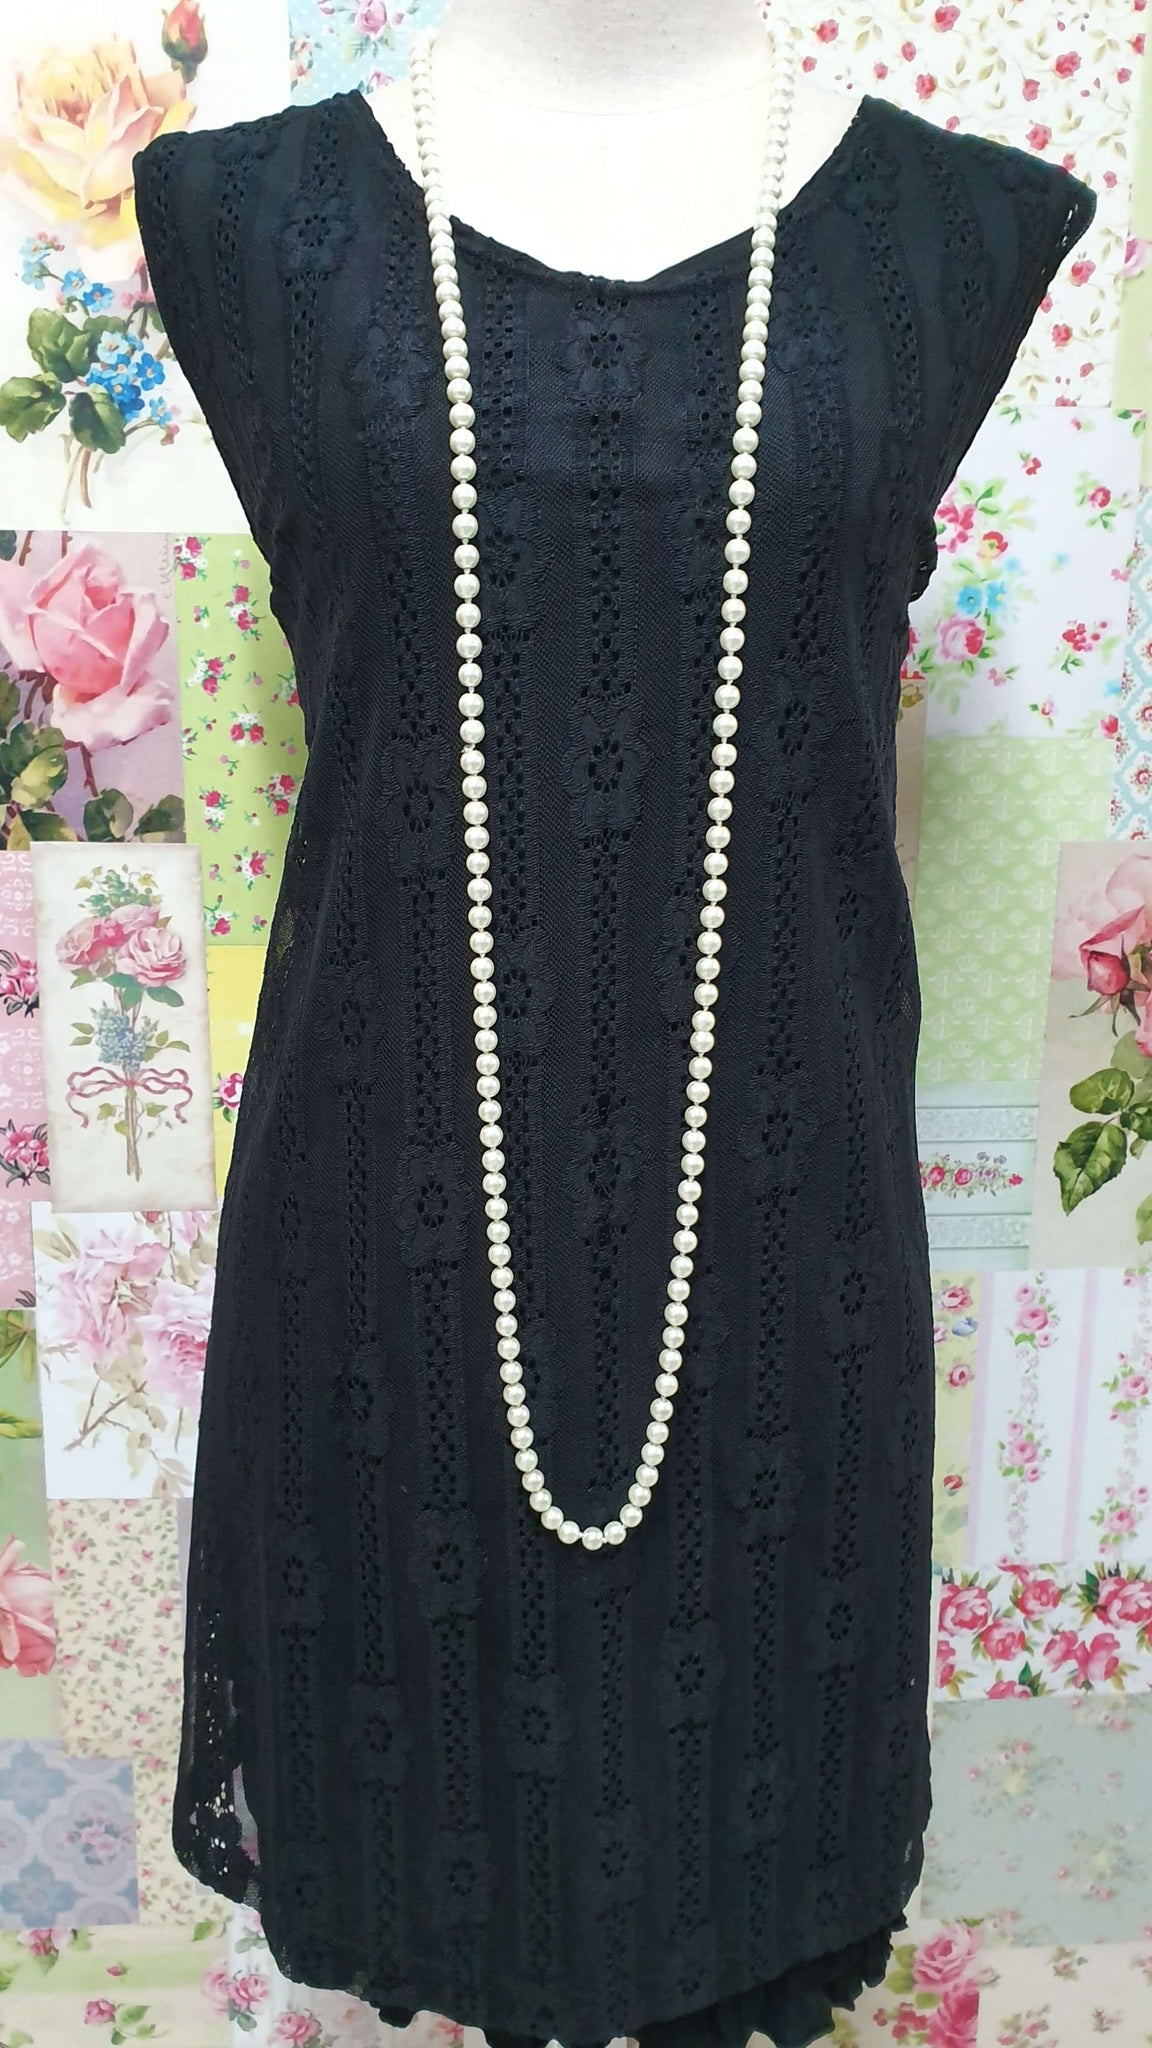 Cream Pearl Beads Necklace JU0220